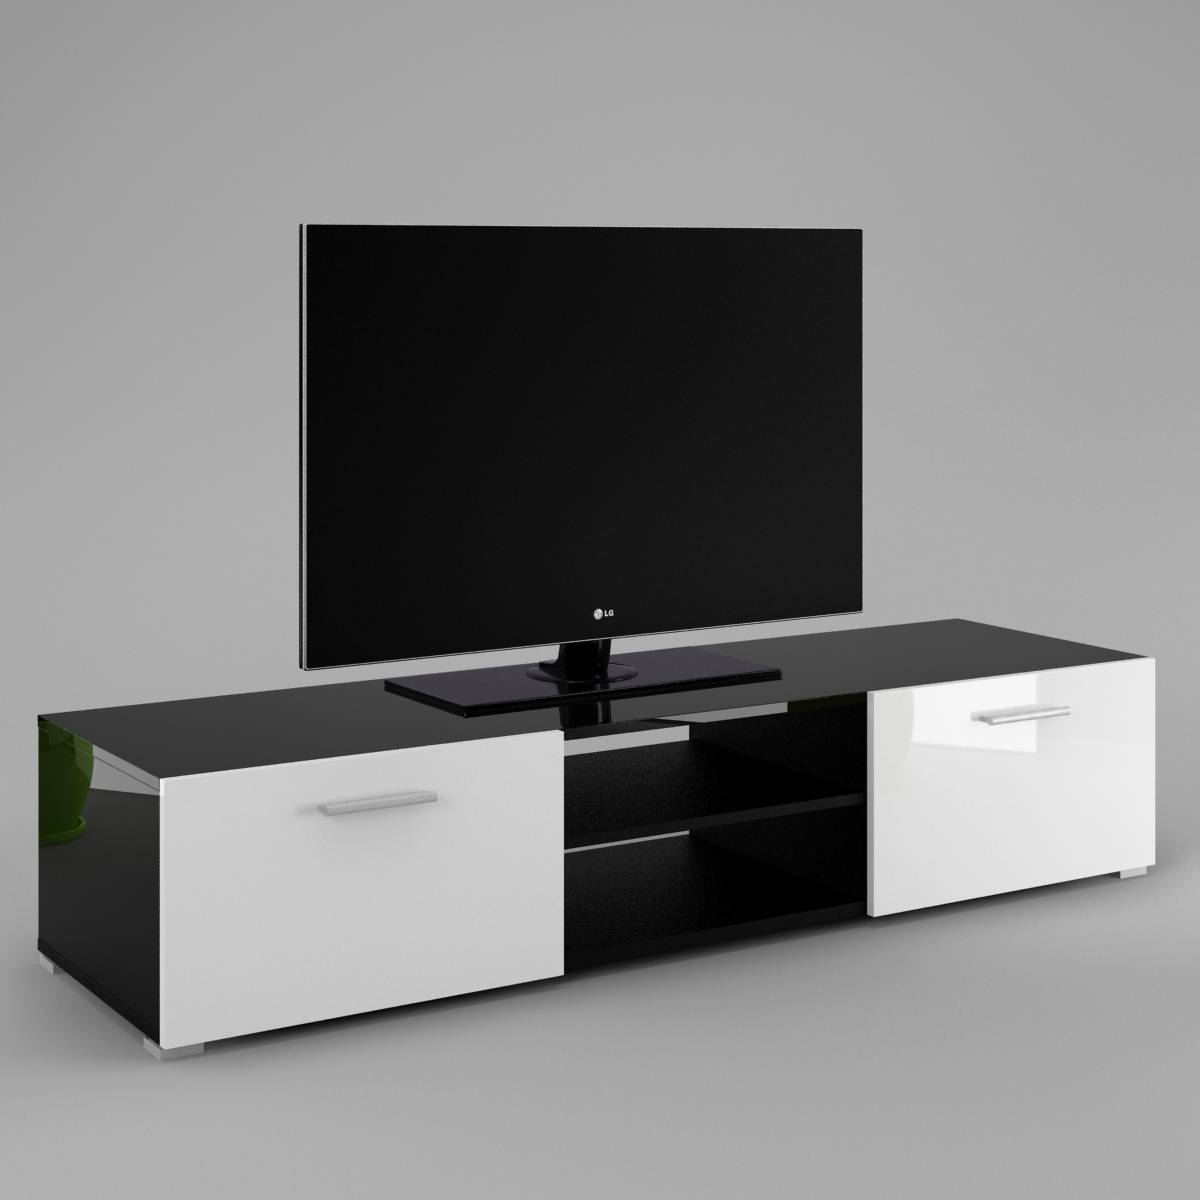 Tv Cabinet Luna - Labi Furniturelabi Furniture for High Gloss White Tv Cabinets (Image 12 of 15)